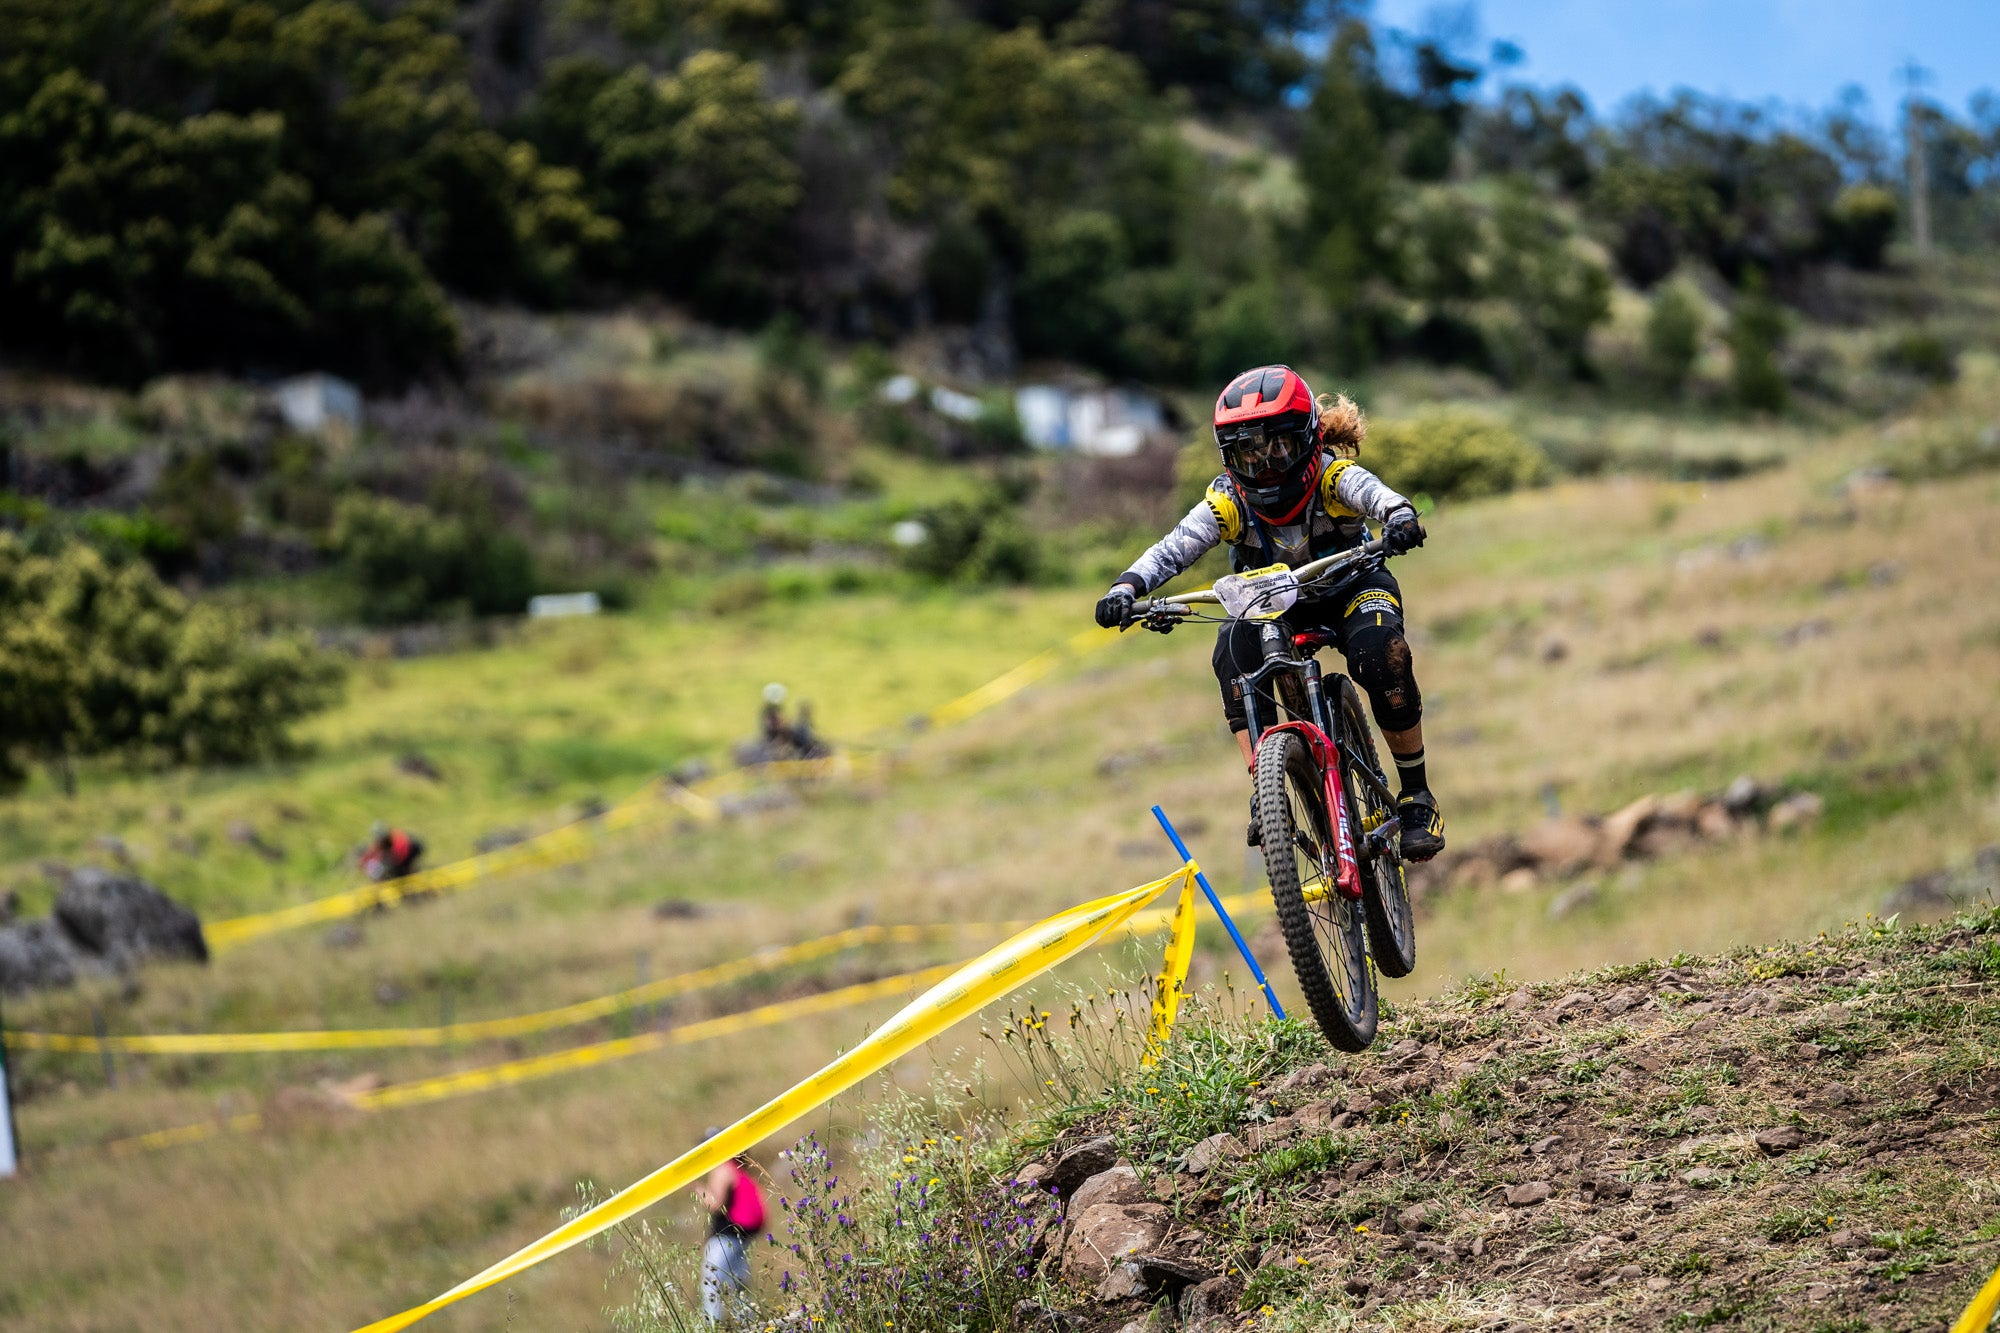 Isabeau Courdurier - Intense Mavic Collective - Enduro World Series #3 Maderia - Portugal